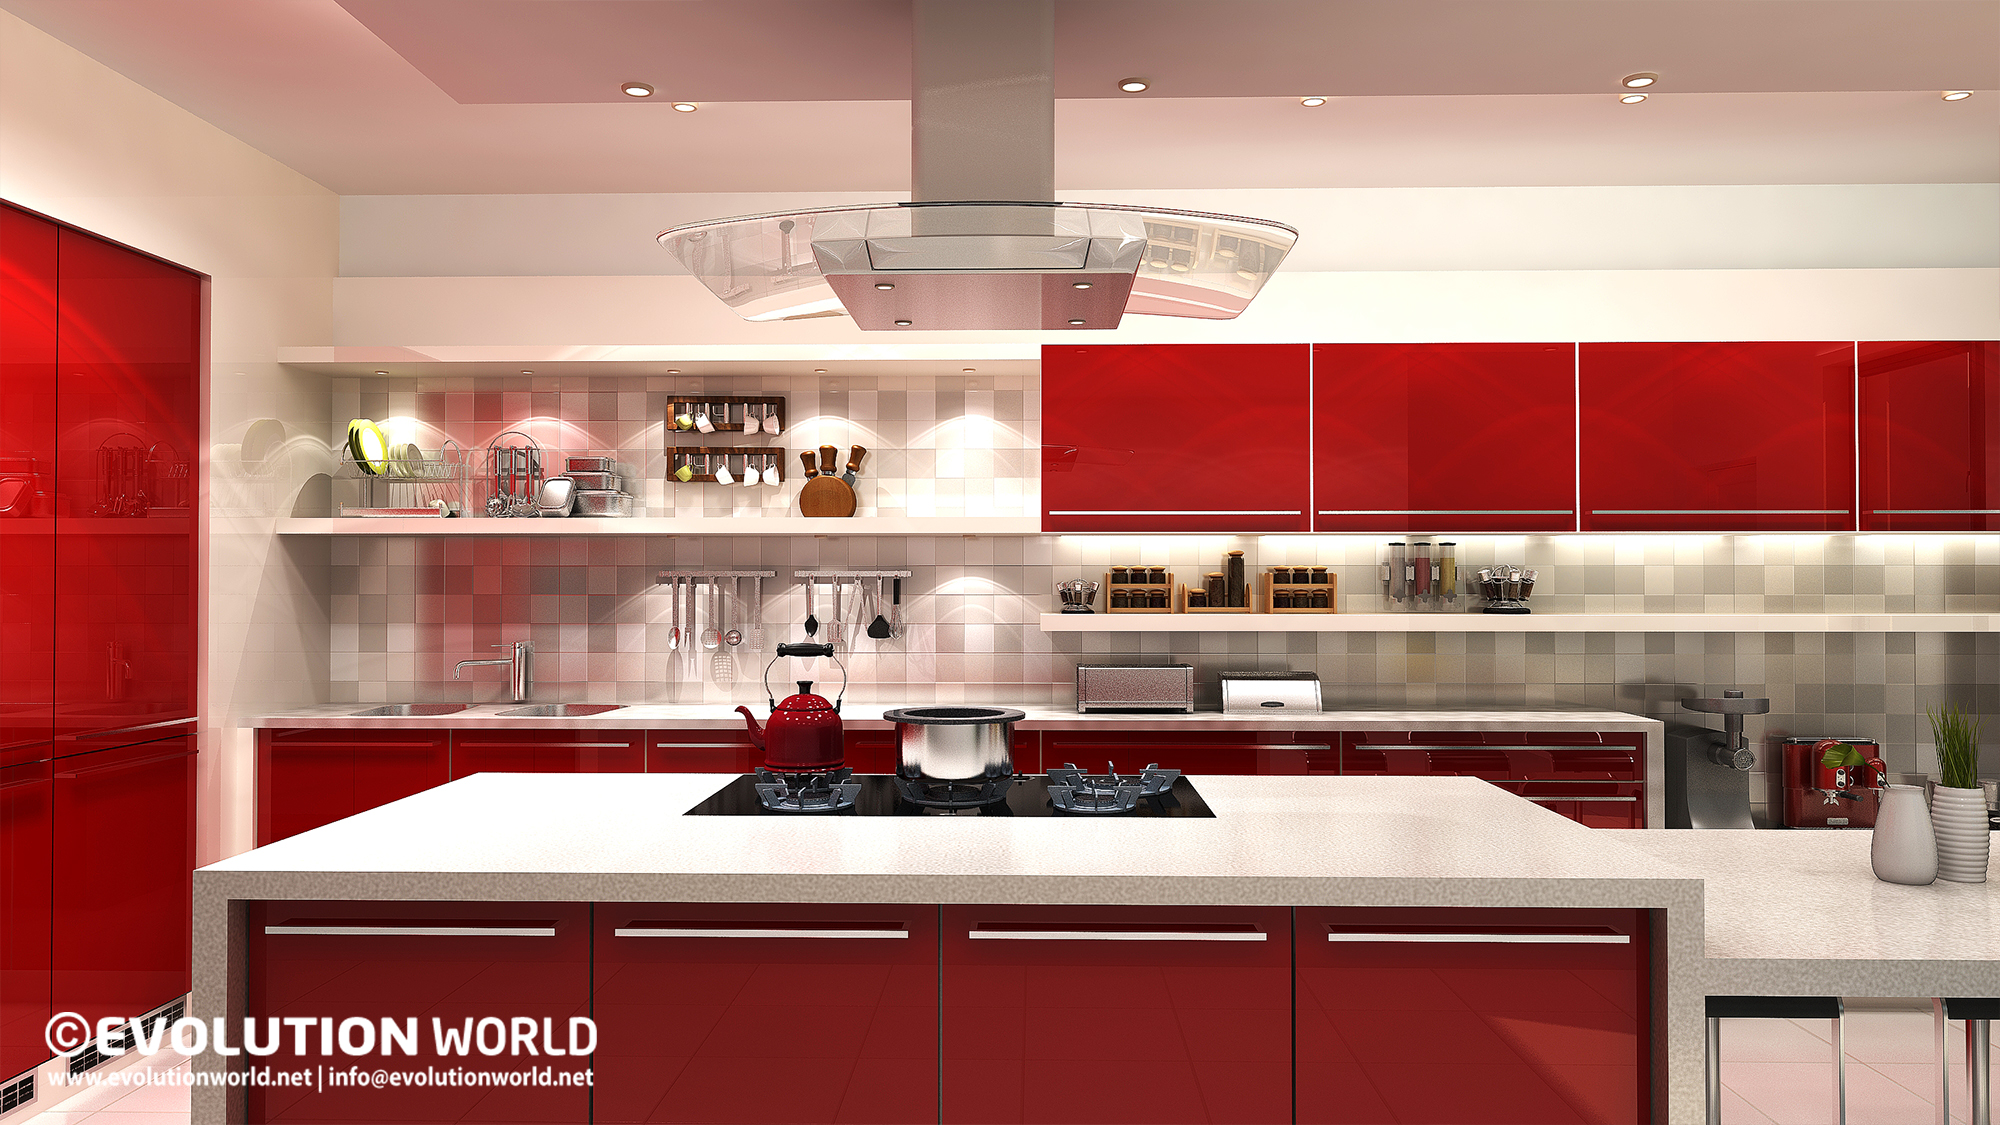 design kitchen agency evolution world web design bahrain agency animation 919